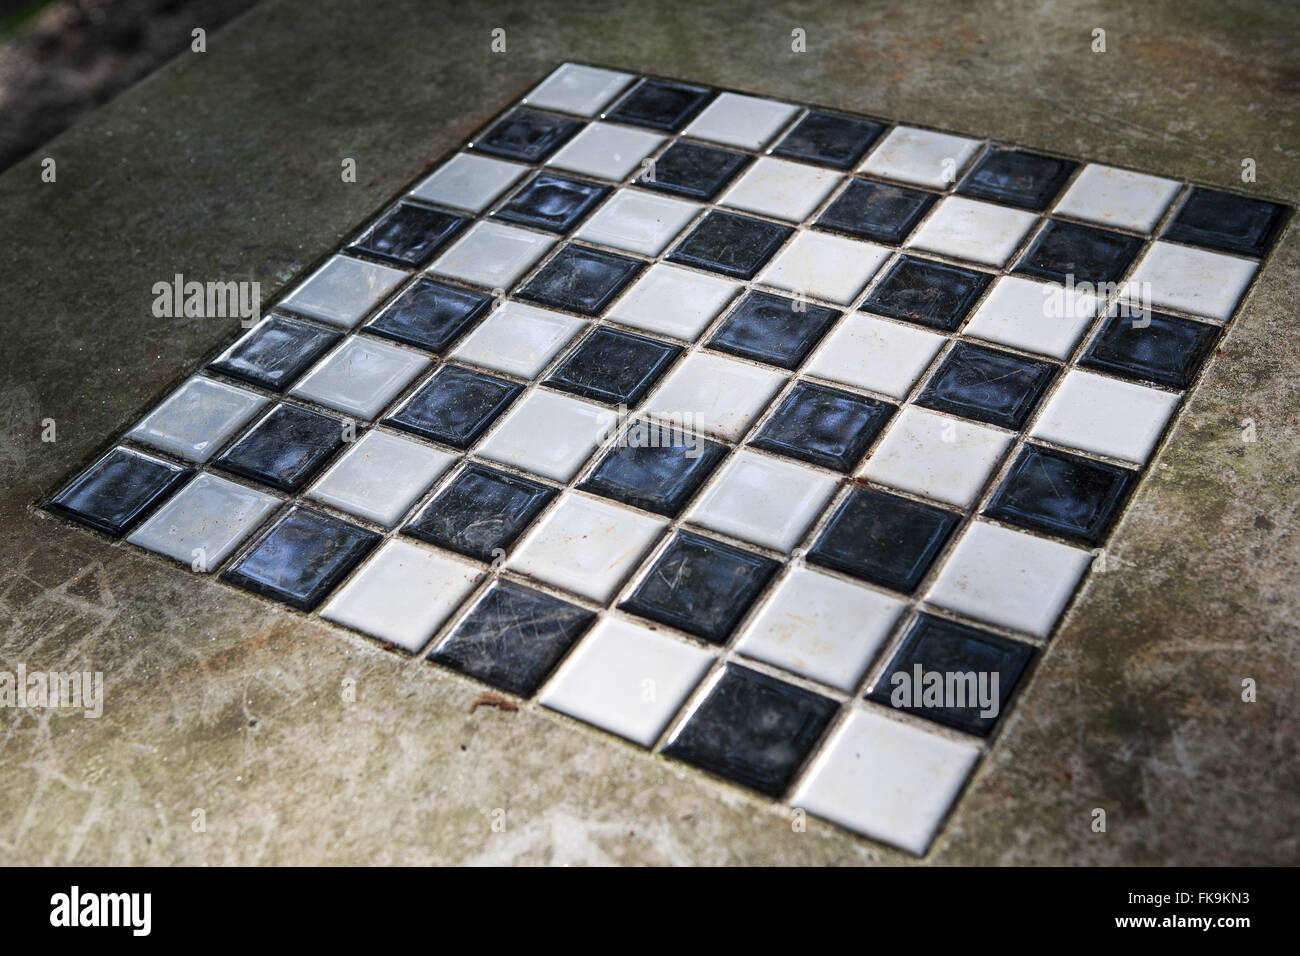 Detail of the chessboard - Stock Image